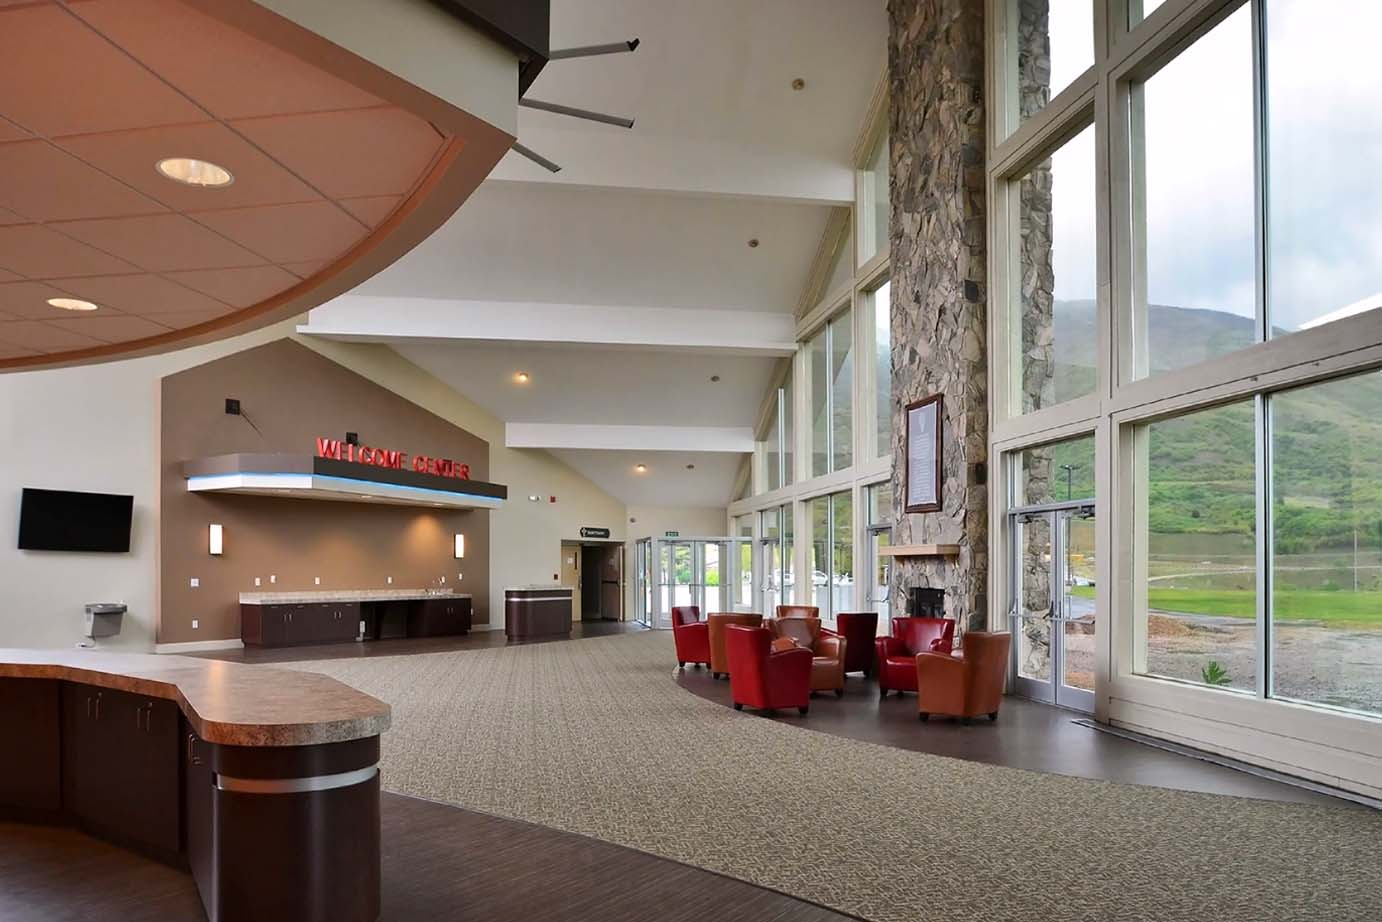 Picture of Mountain View Baptist Renovation. Copyright 2014, Mountain West Architecture.